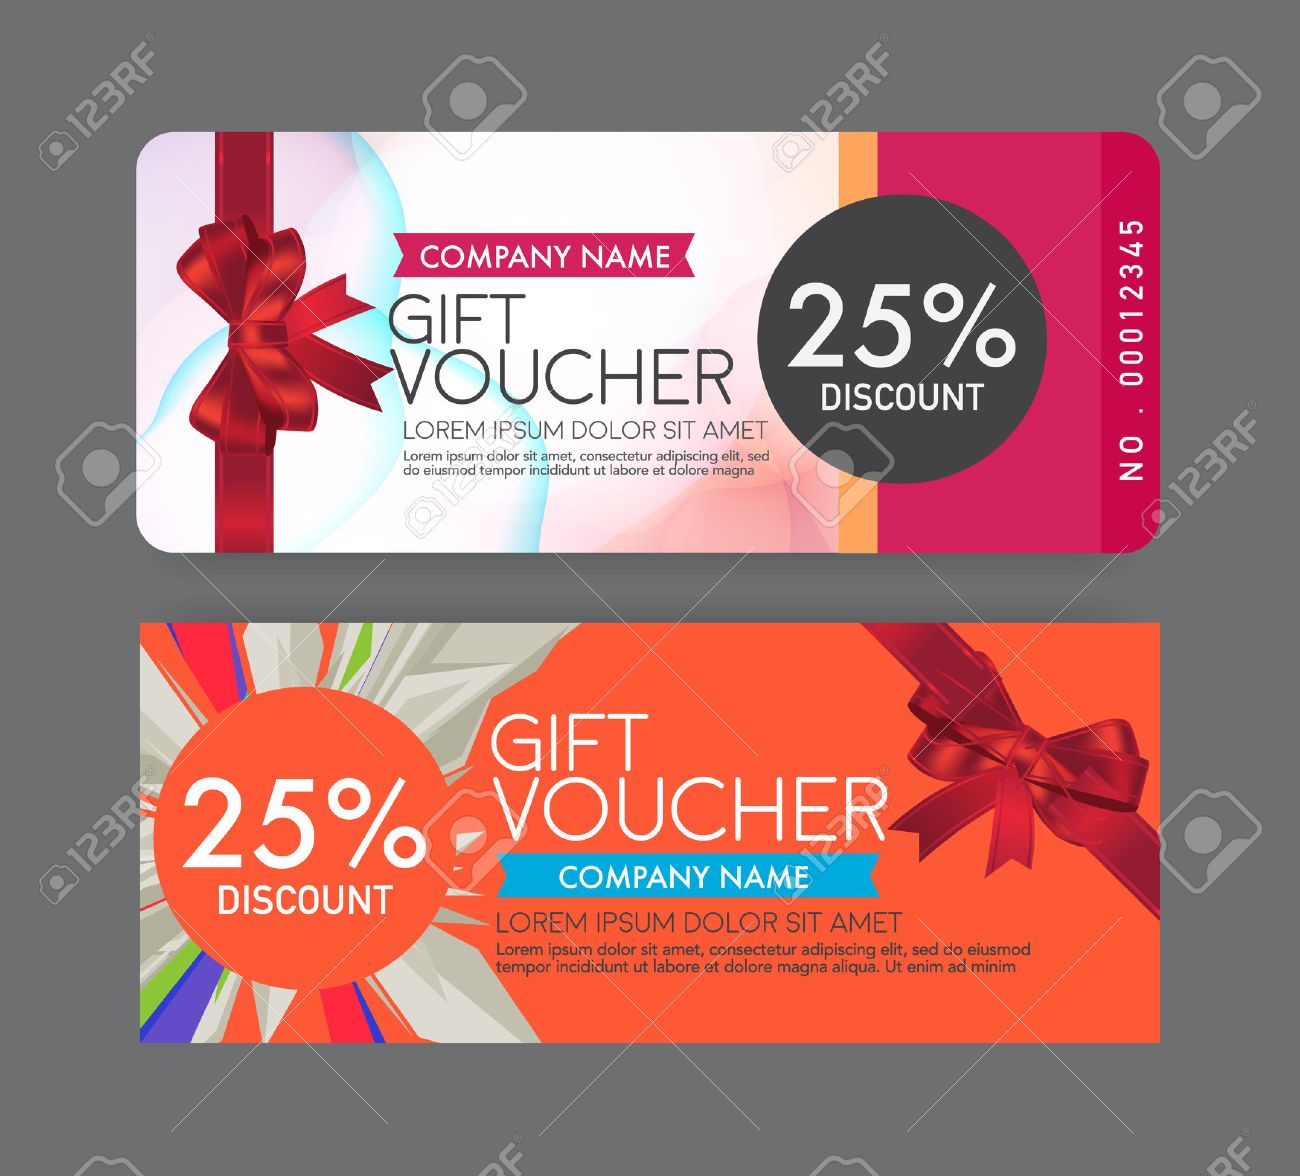 gift voucher template royalty cliparts vectors and stock gift voucher template stock vector 44547978